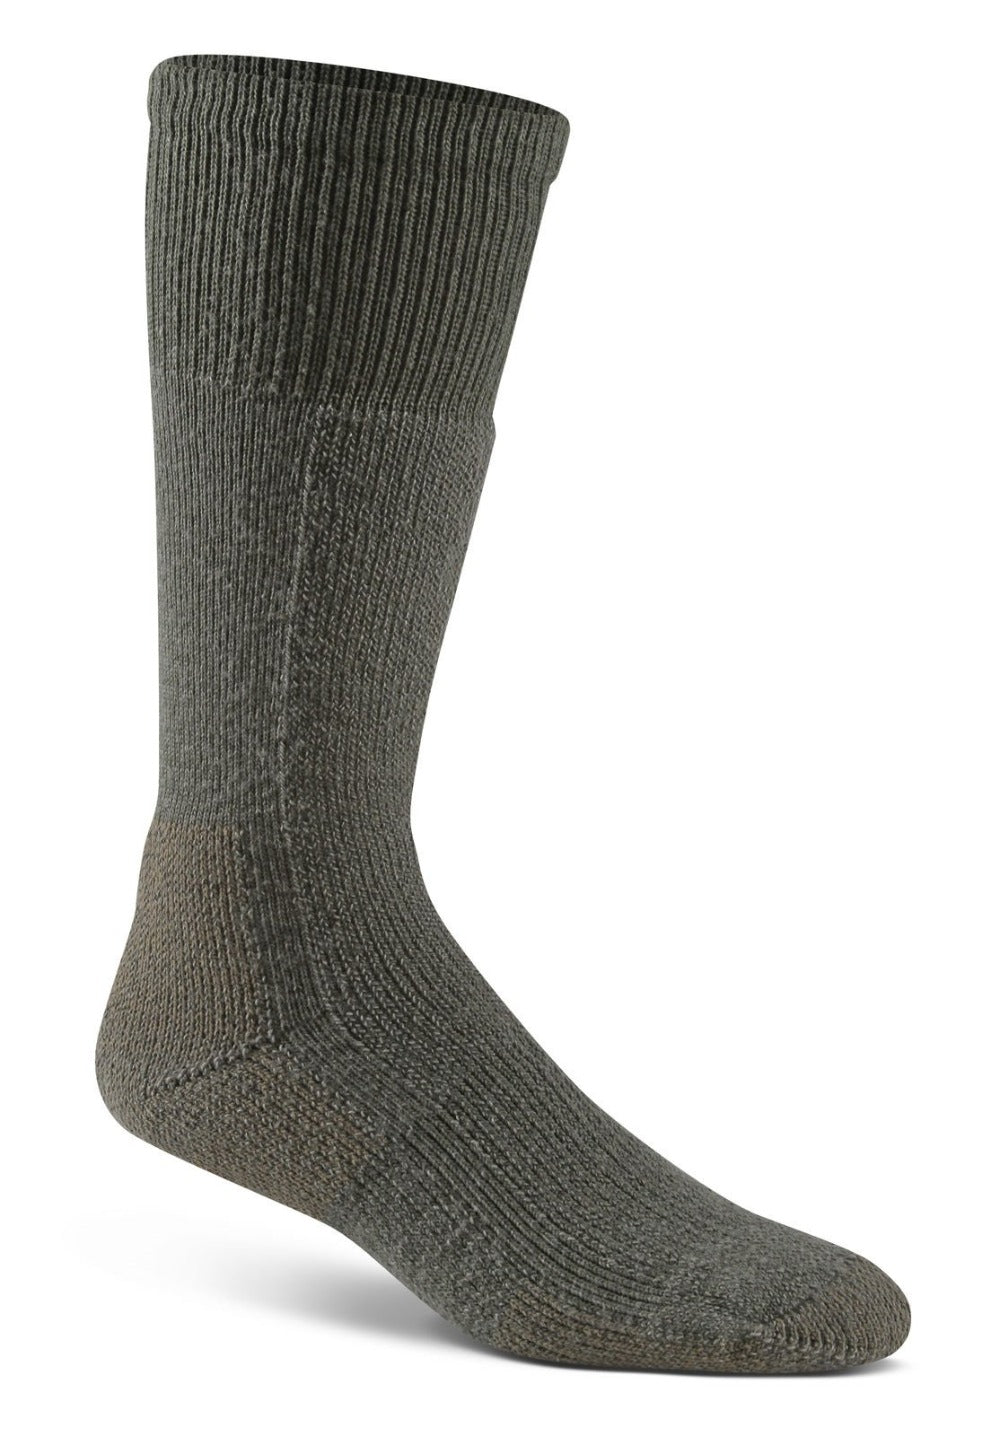 Fox River Thermal Socks